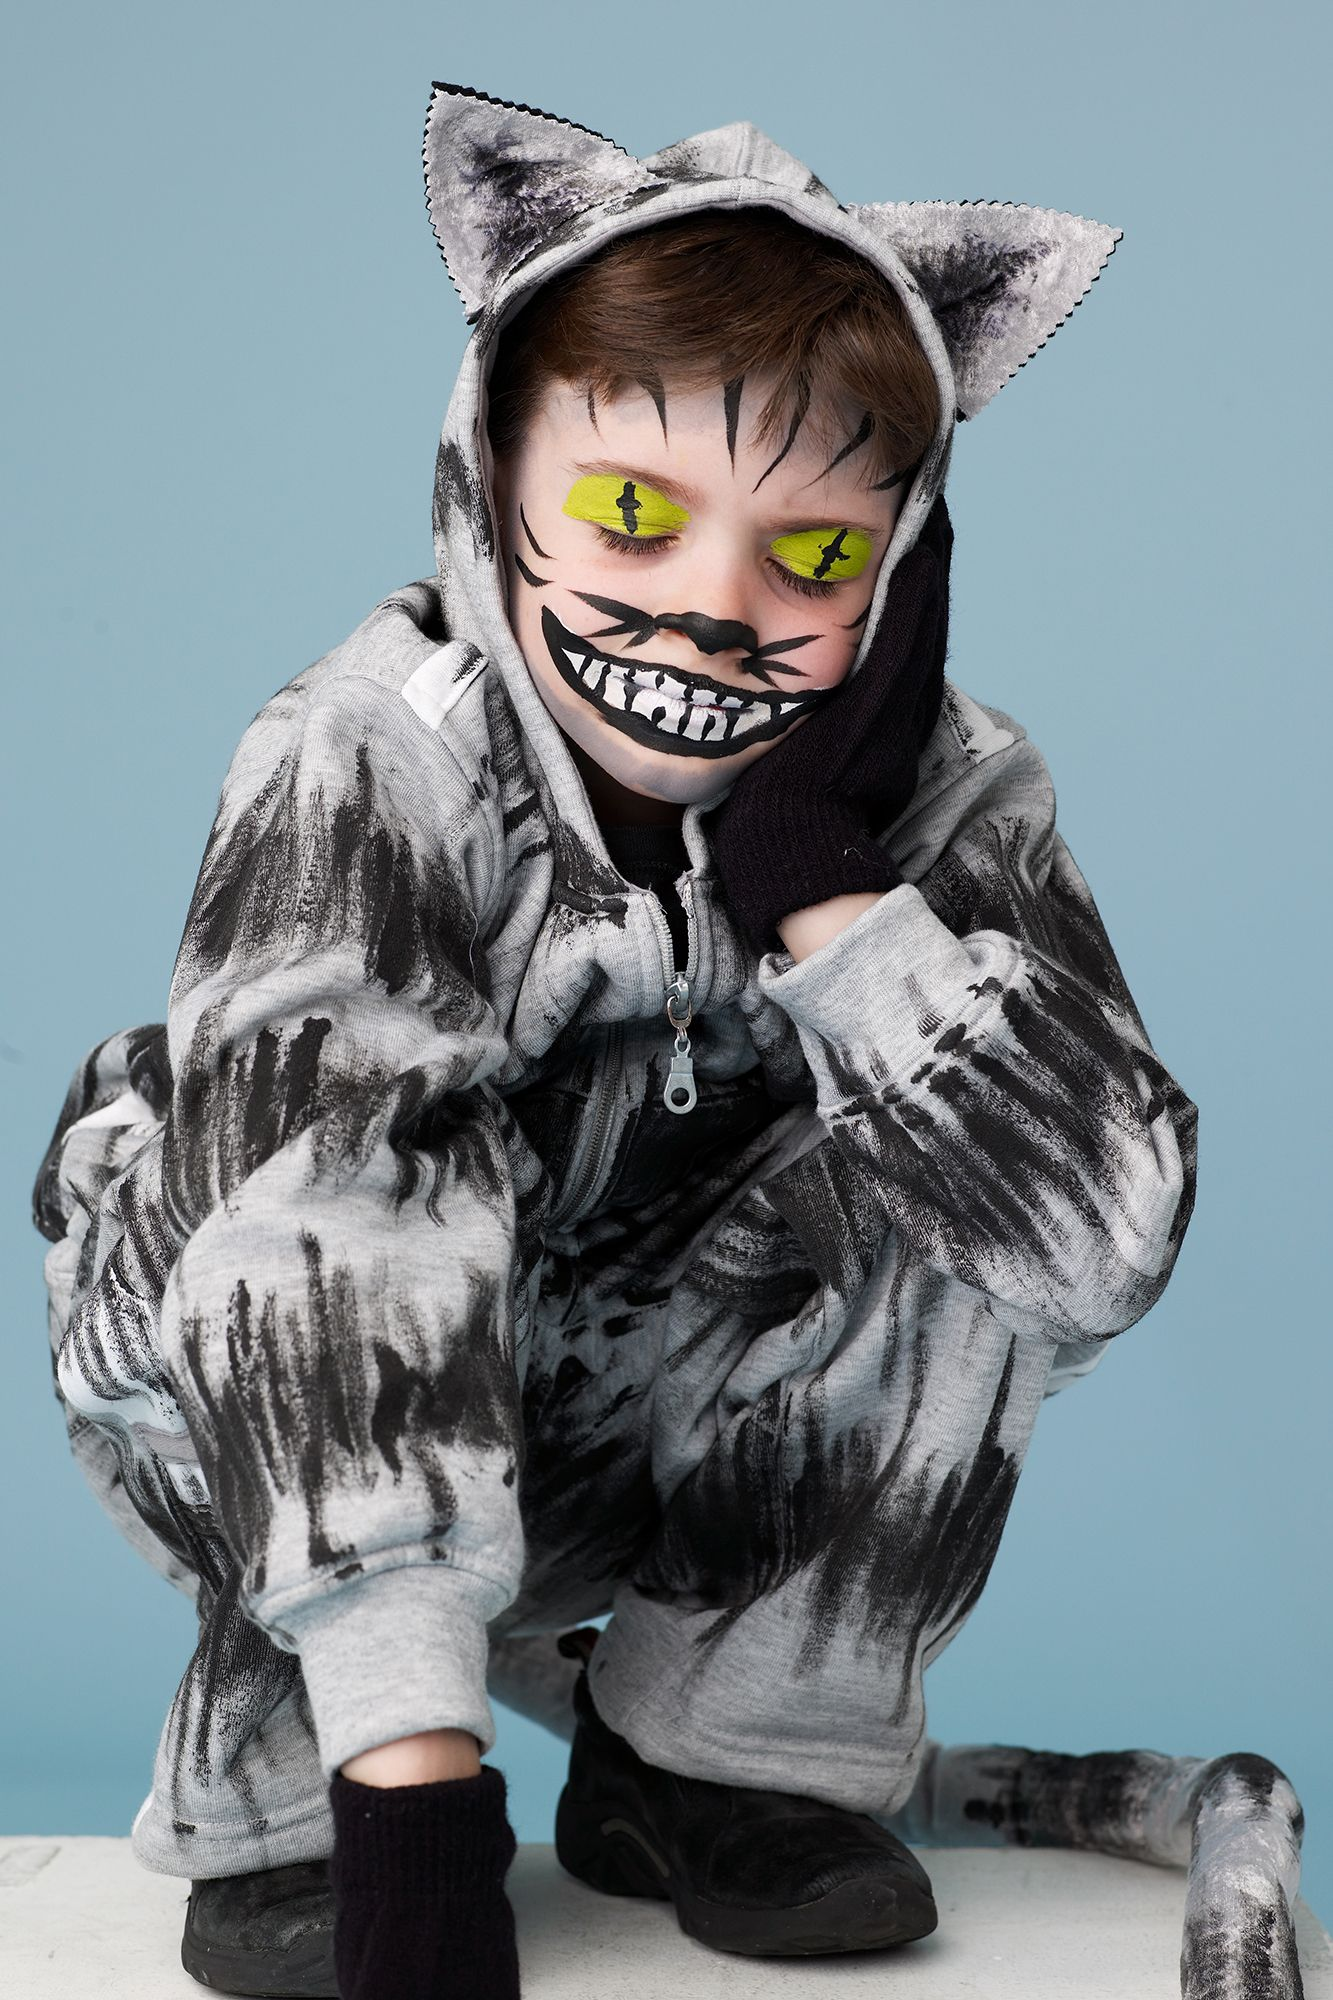 22+ Scary Halloween Costumes For 8 Year Olds Pics